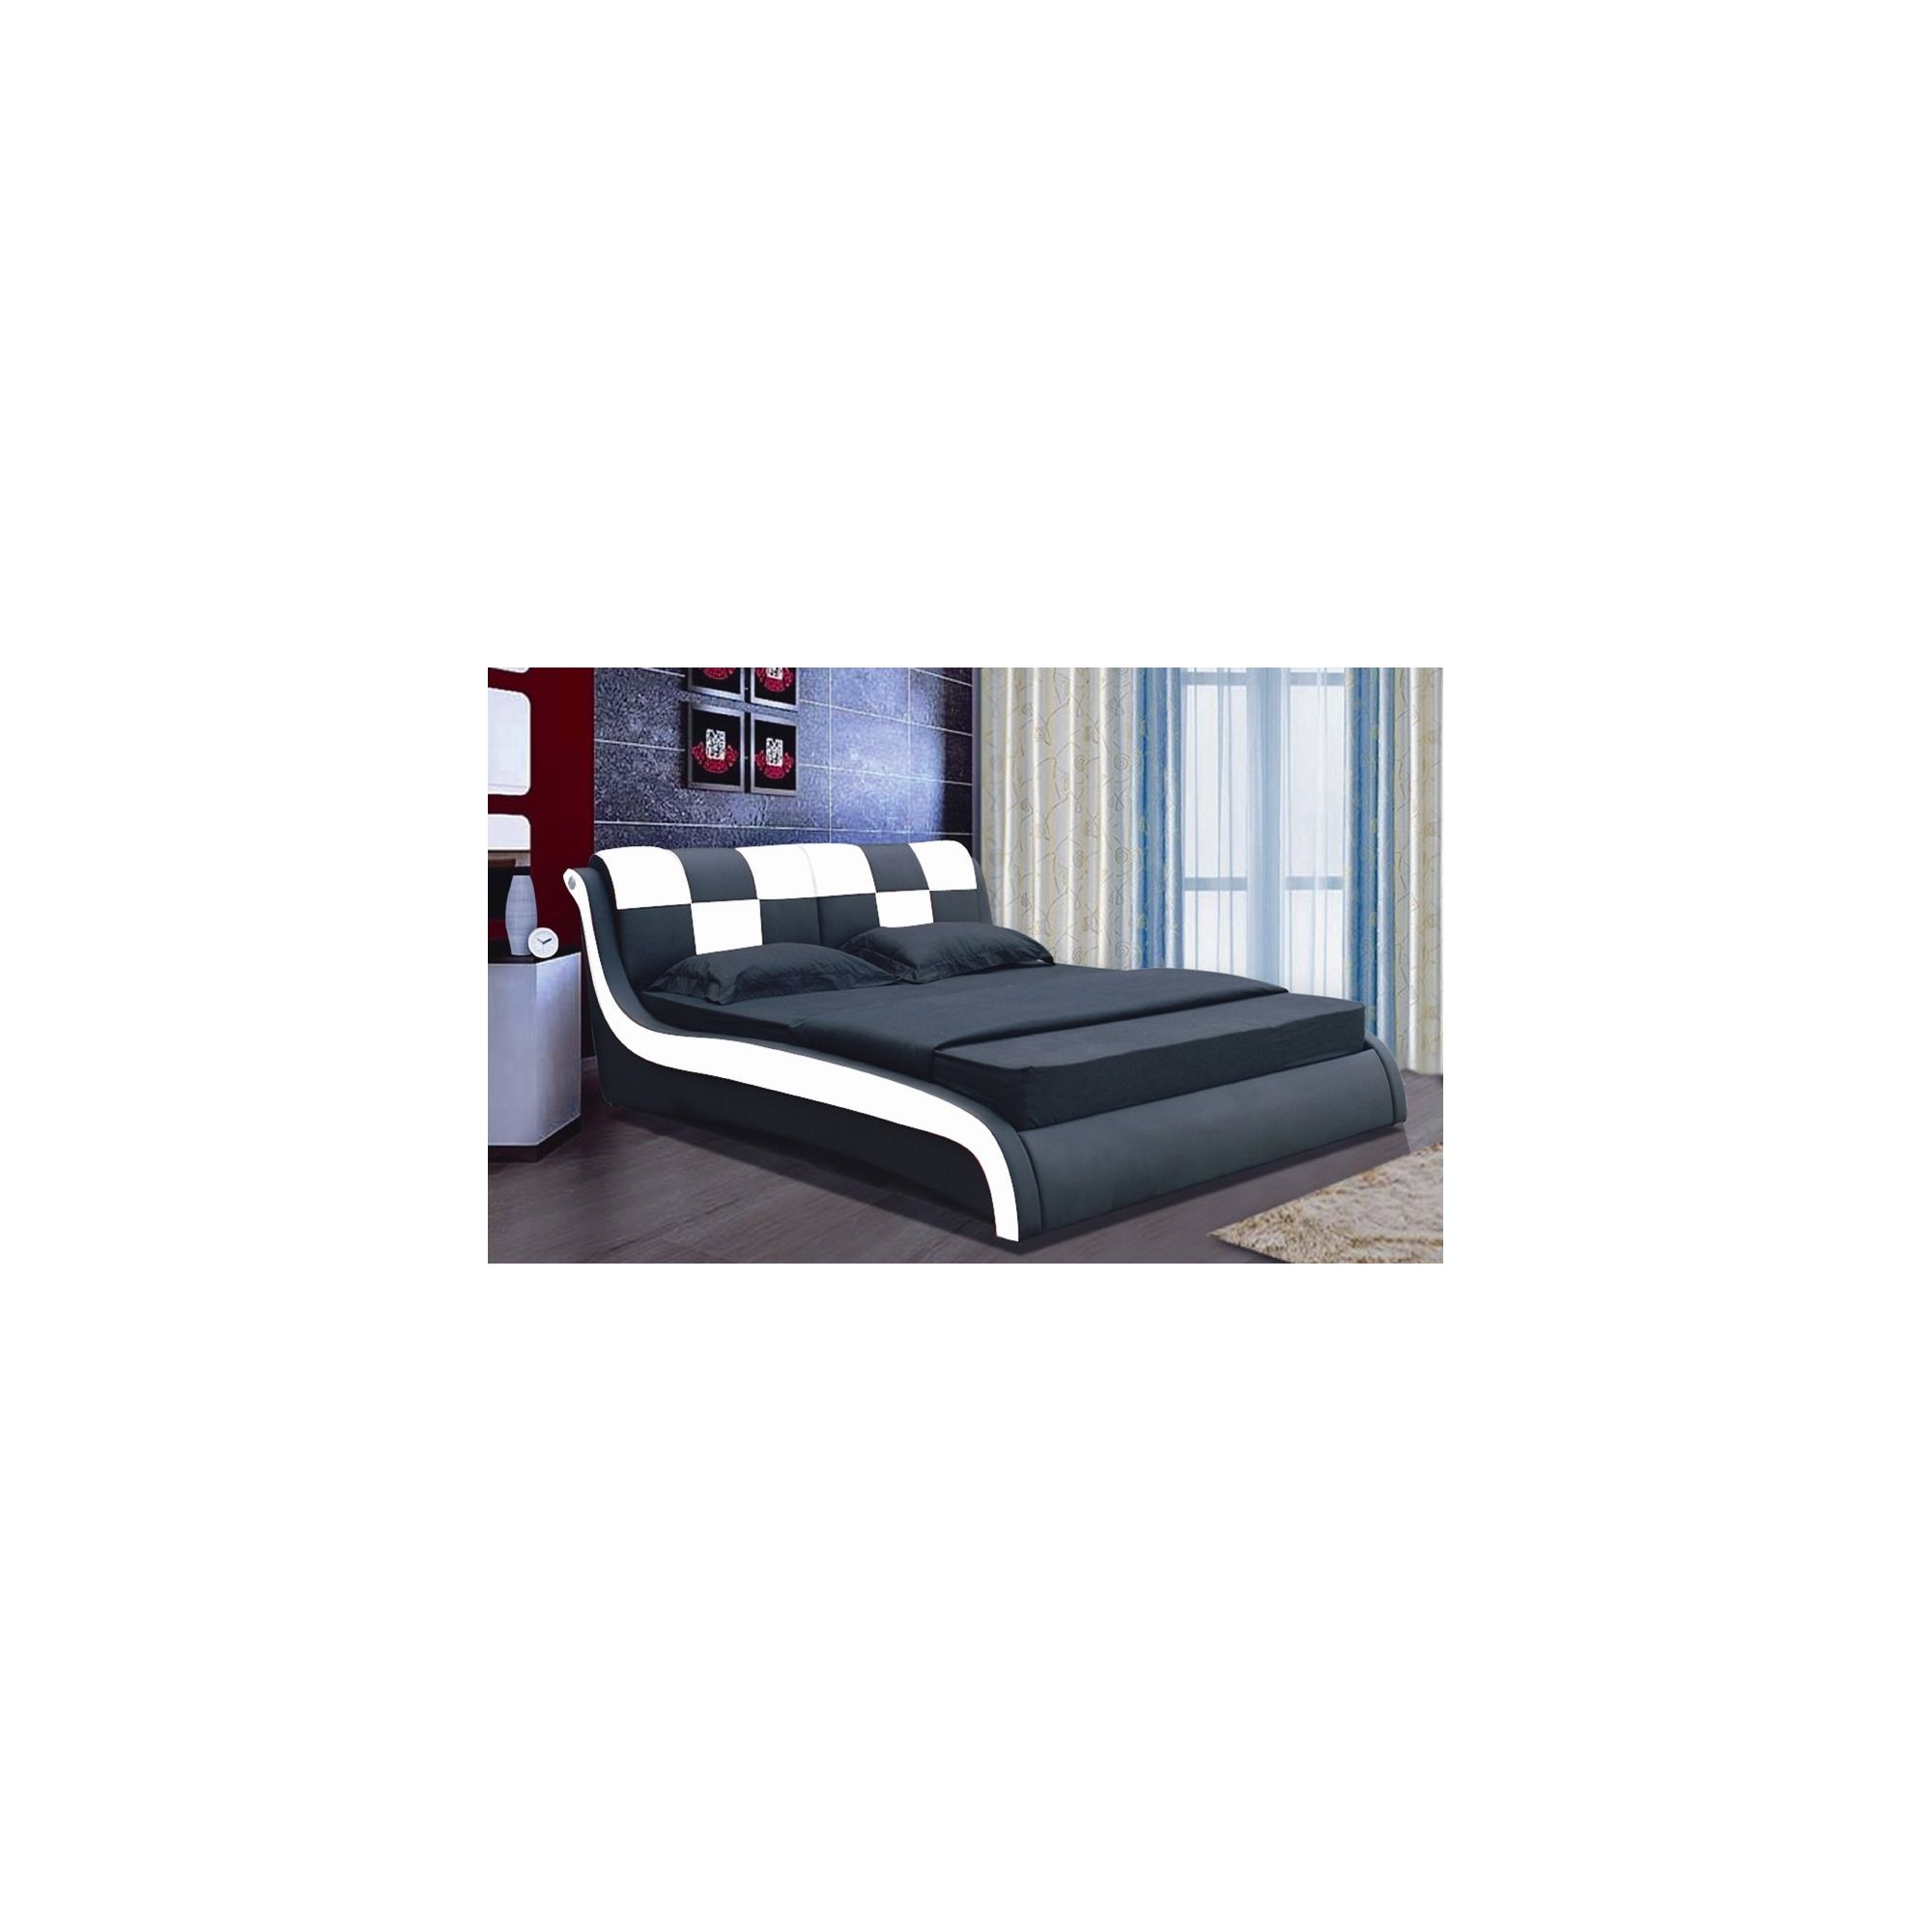 Giomani Designs Designer Check Bed - White / Black - Double at Tescos Direct